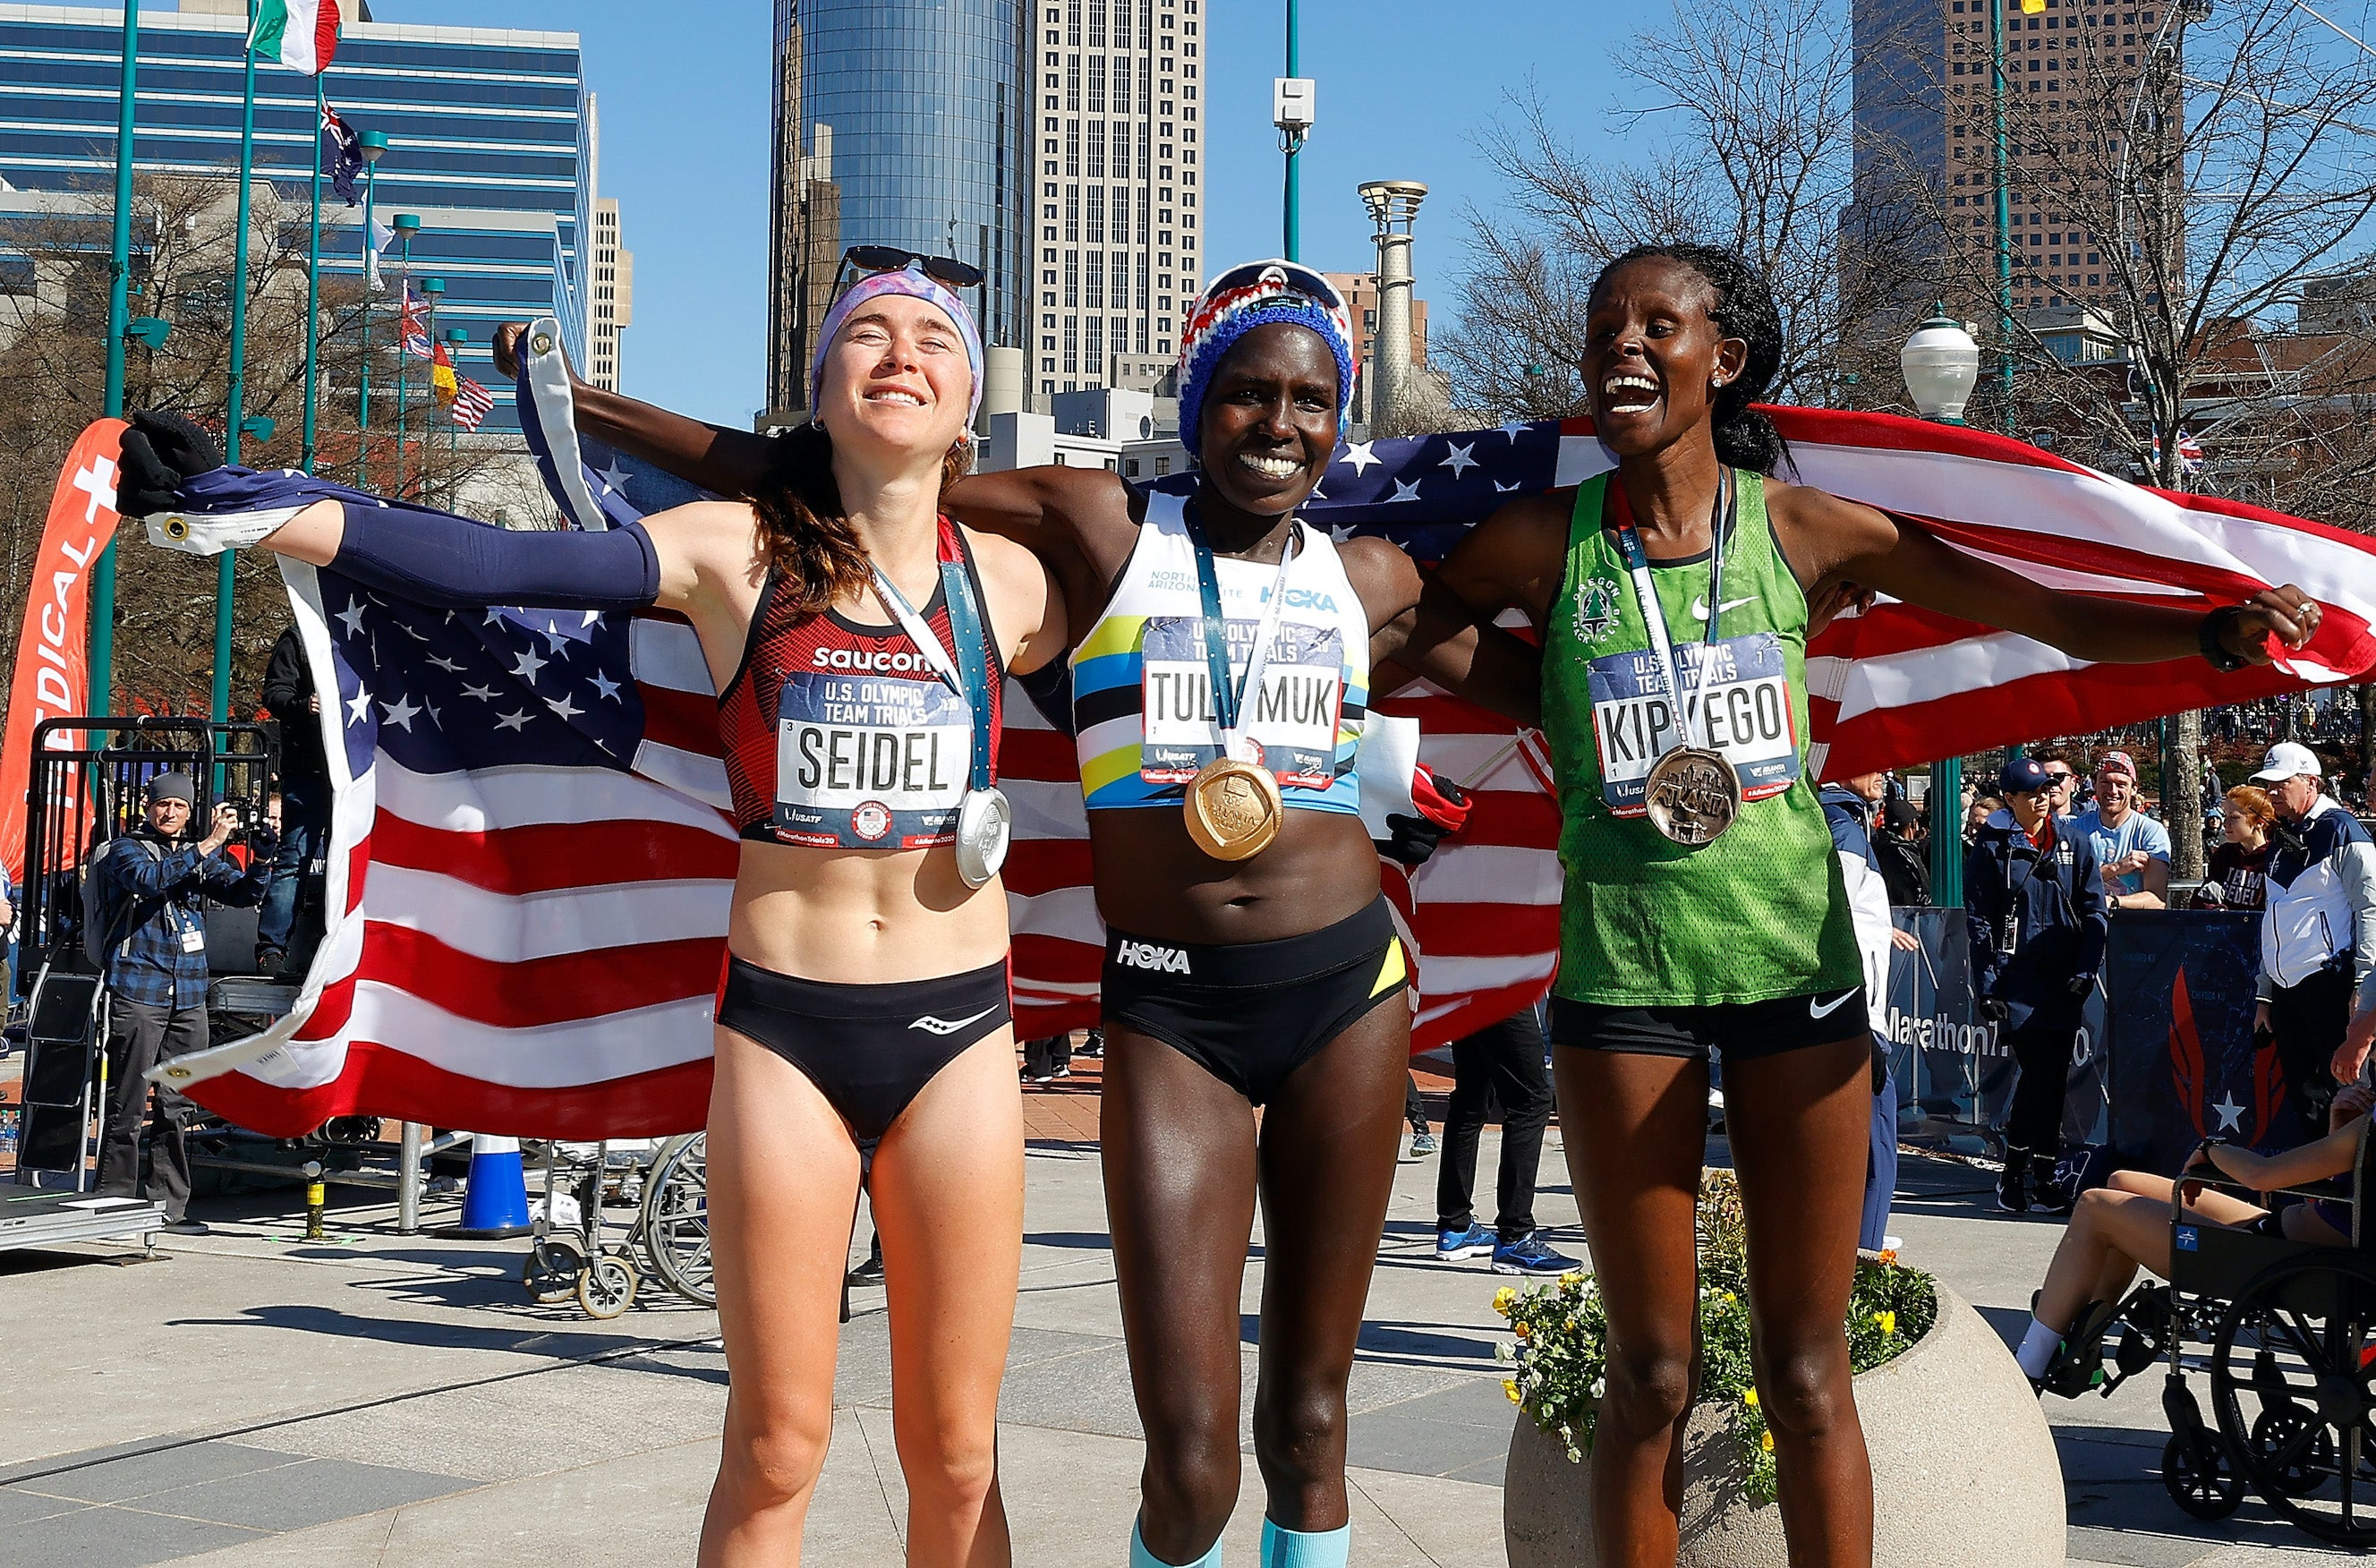 Molly Seidel, Aliphine Tuliamuk, and Sally Kipyego pose after finishing in the top three of the Women's U.S. Olympic marathon team trials on February 29, 2020 in Atlanta, Georgia.